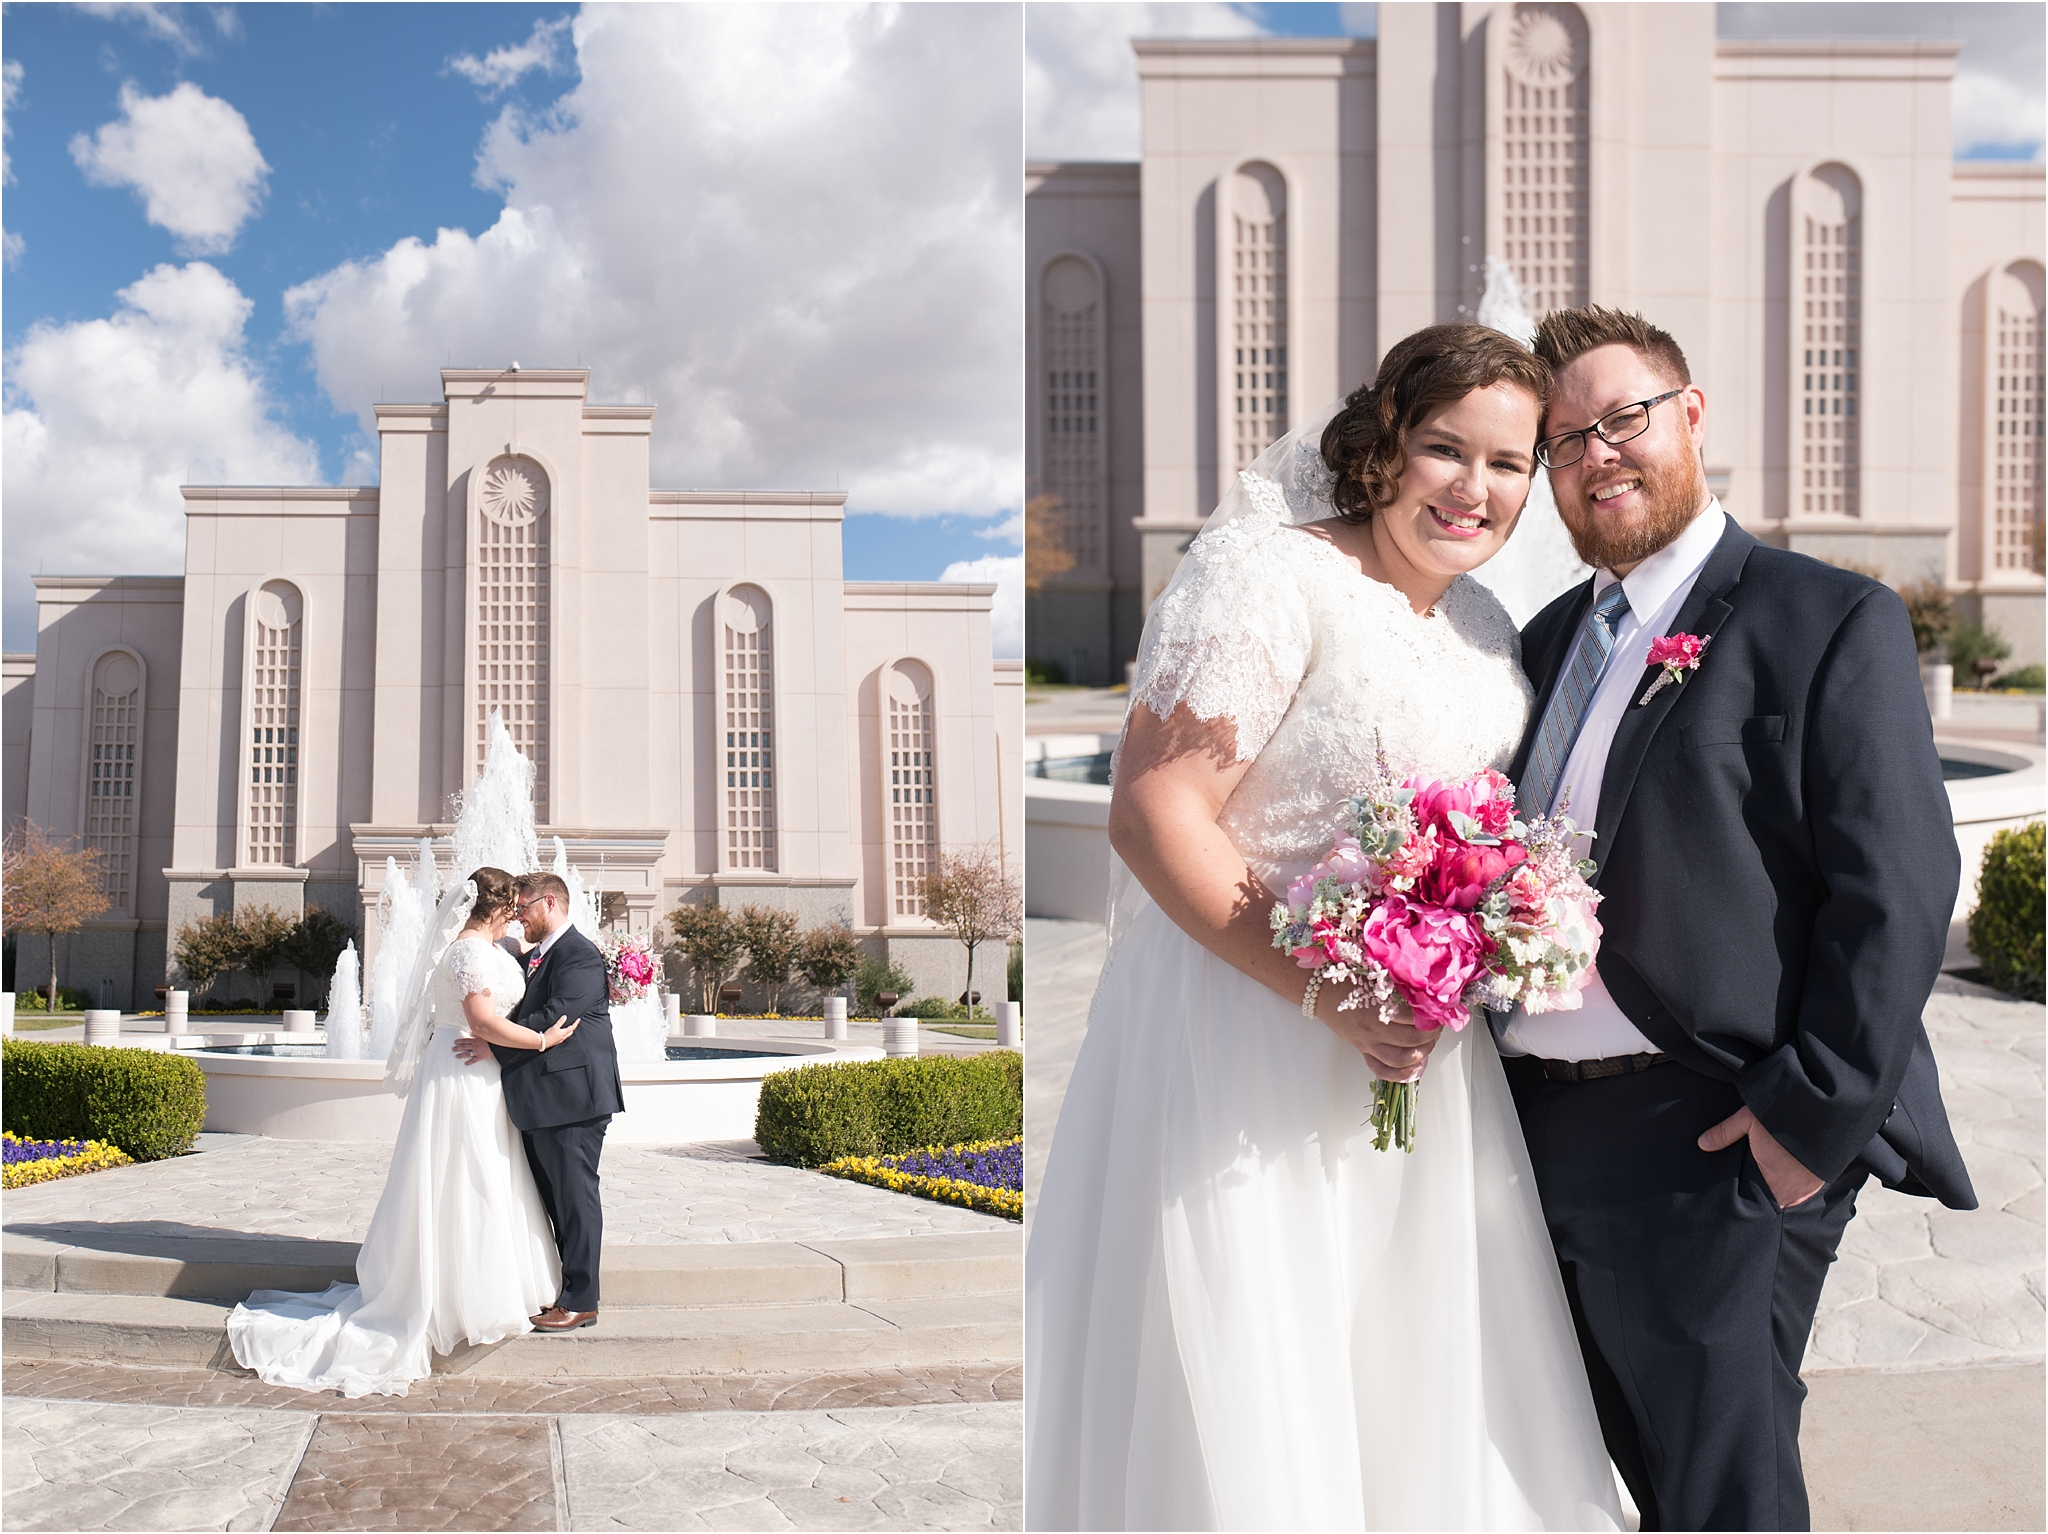 kayla kitts photography - albuquerque wedding photographer - hairpins and scissors - a cake odyssey - new mexico wedding photographer_0100.jpg